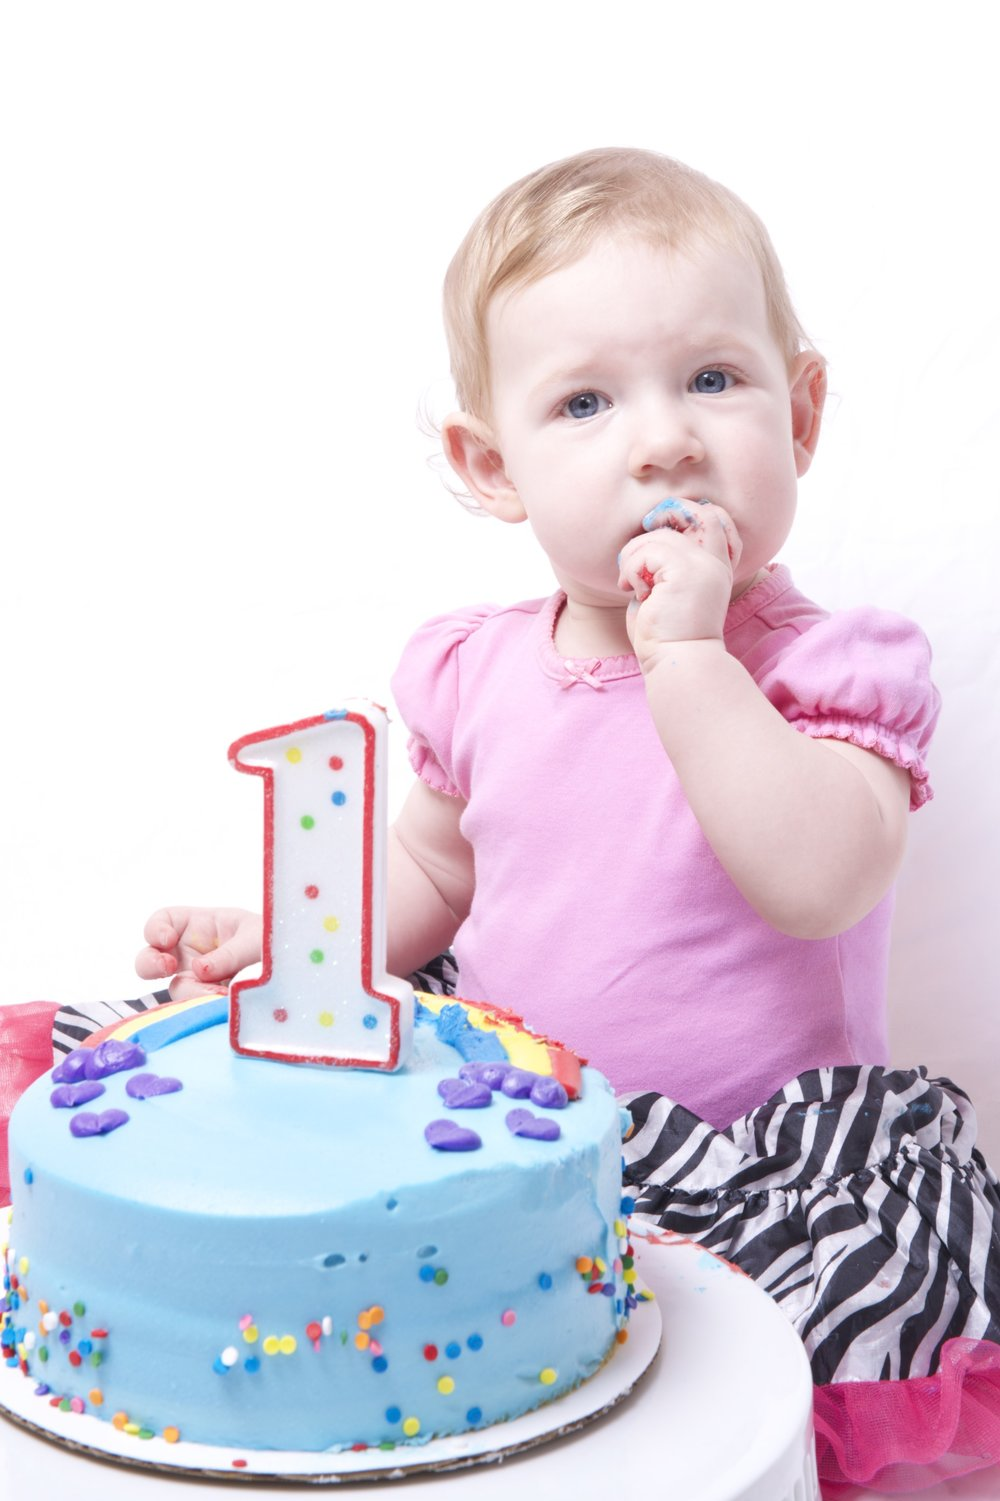 Zora_First_Birthday_Cake_168.jpg